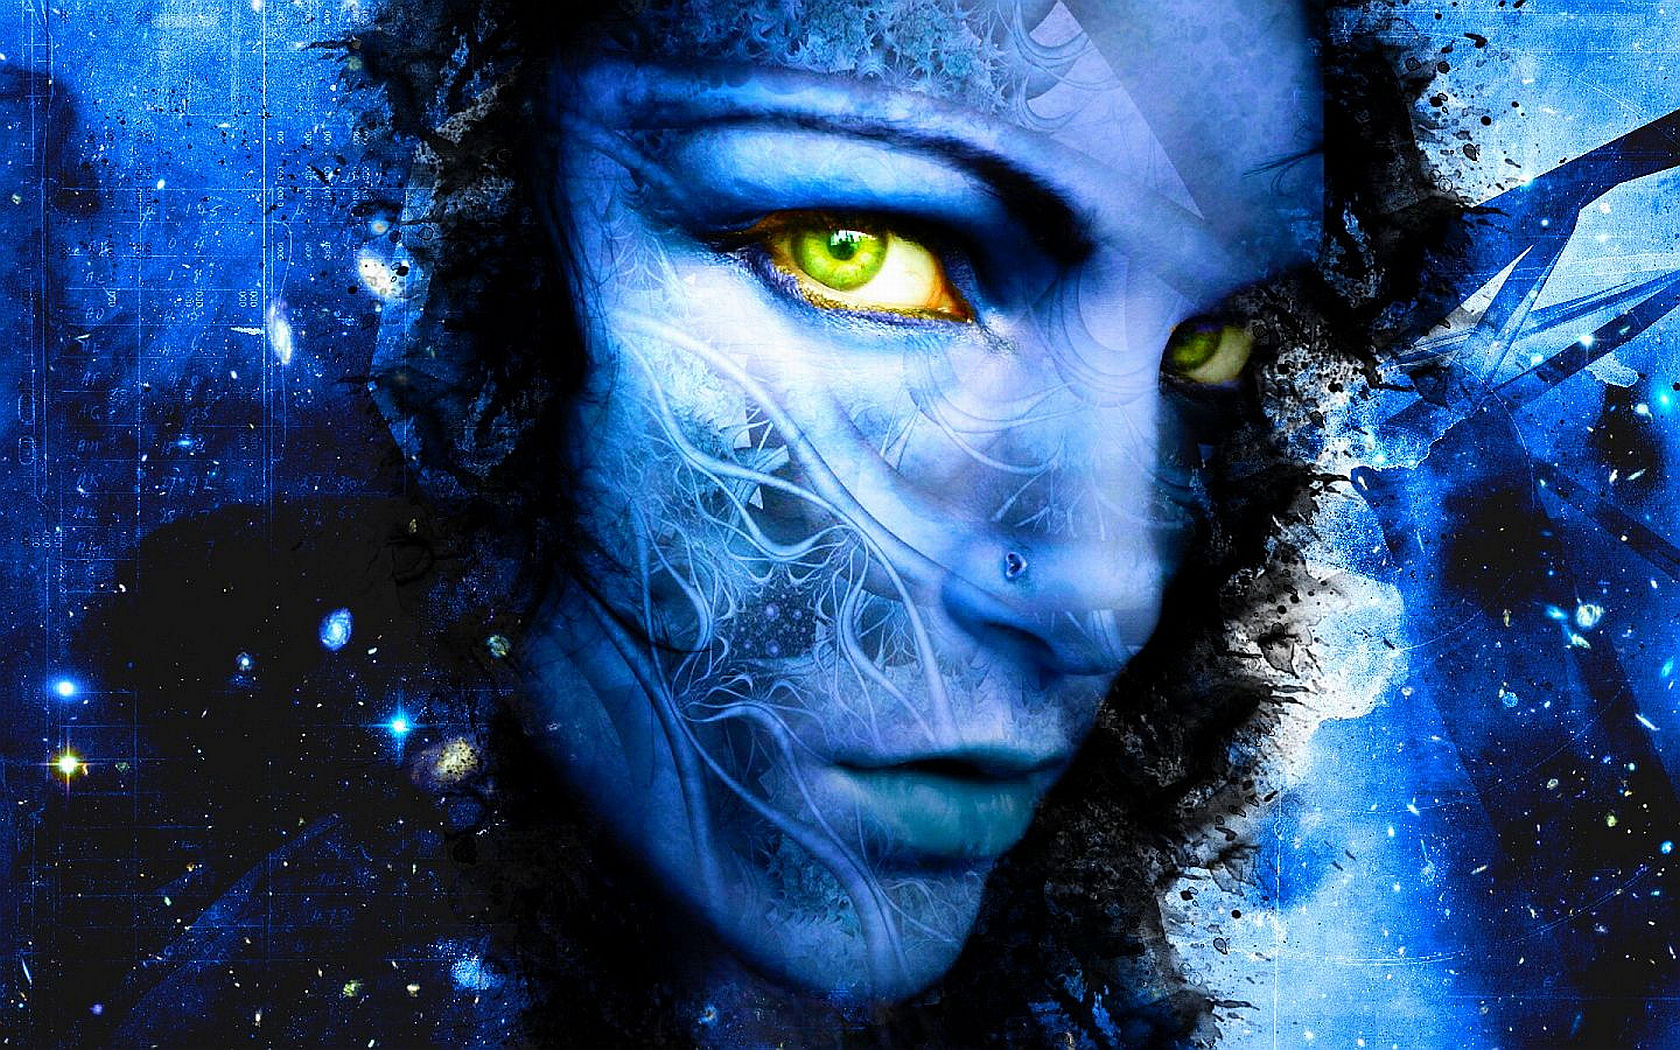 Artistic - Women  Heart Blue Eye Green Artistic Wallpaper